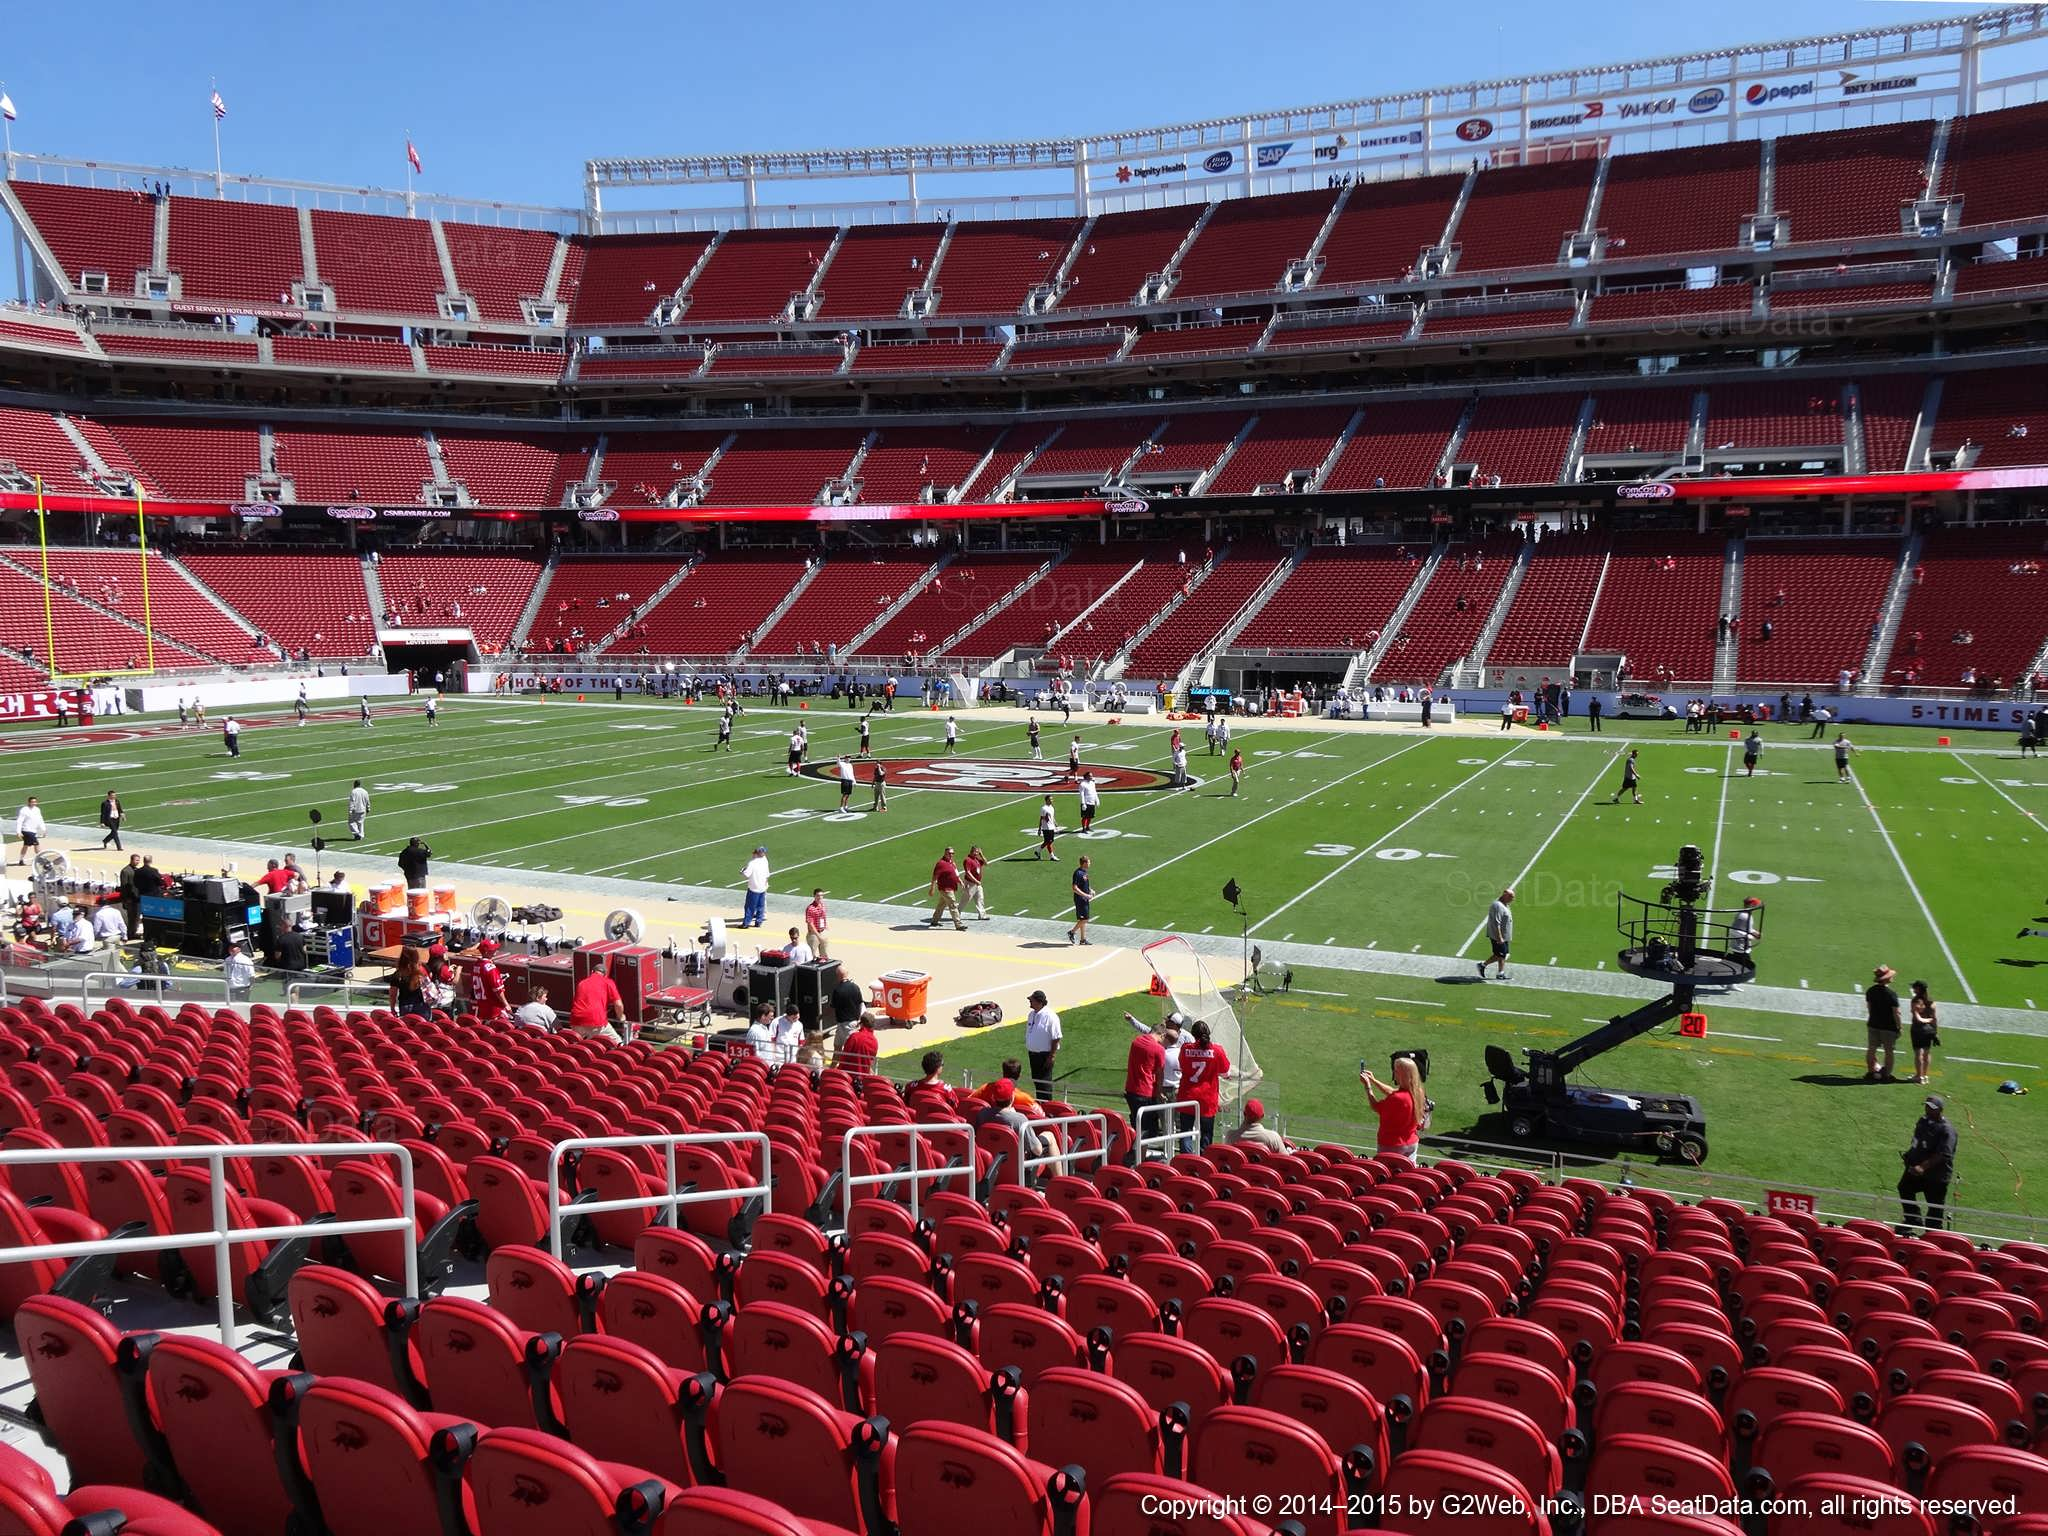 Seat view from section 135 at Levi's Stadium, home of the San Francisco 49ers